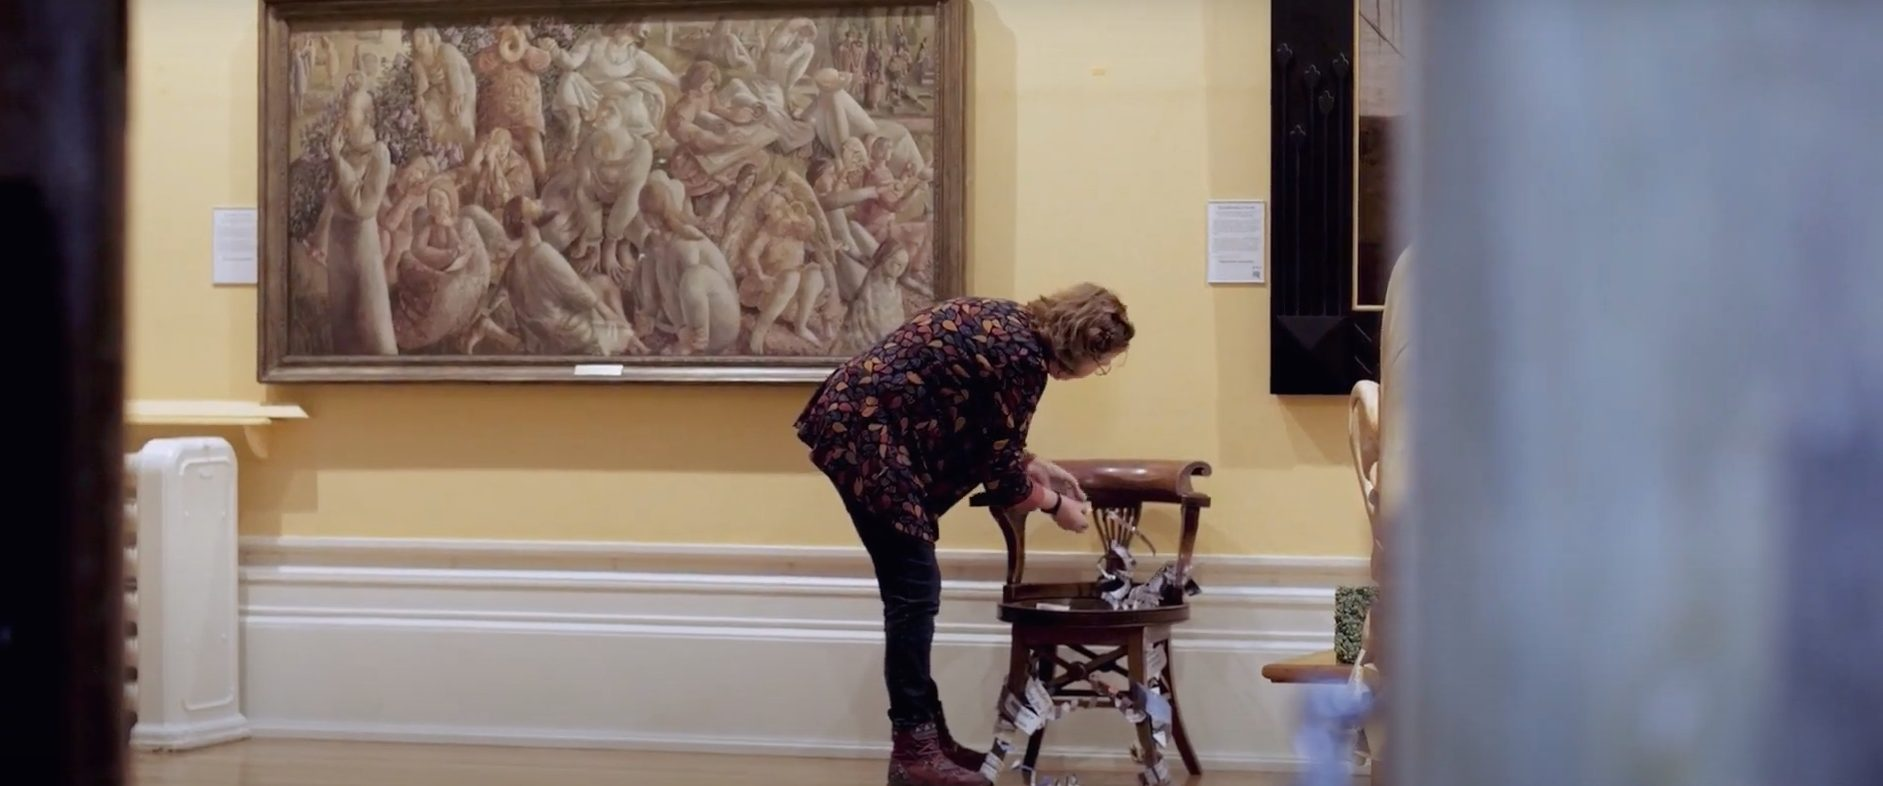 Artist attaching artwork to chair